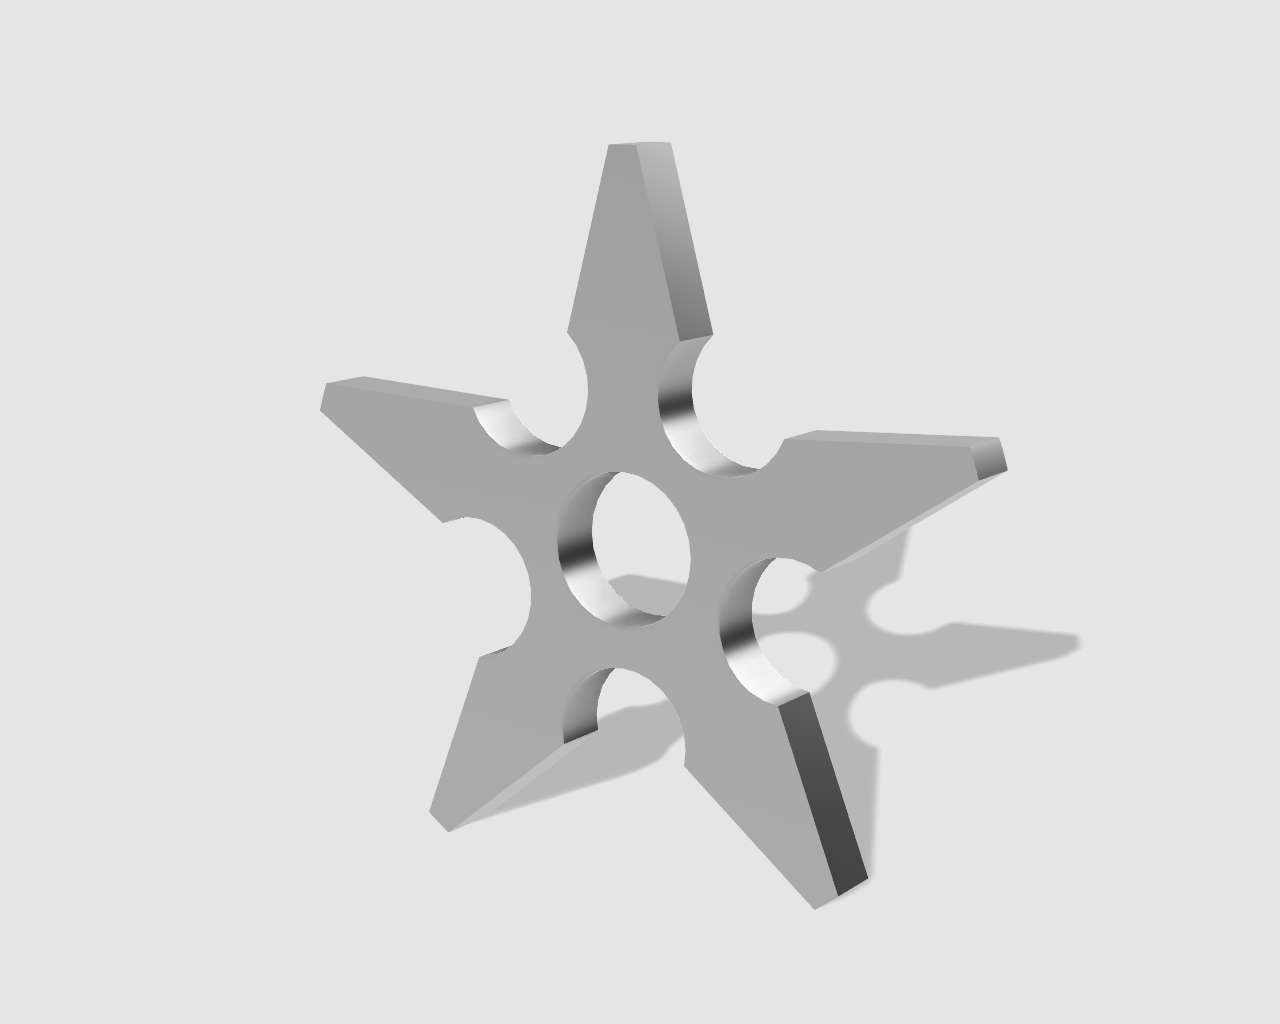 45rpm adaptor  - star